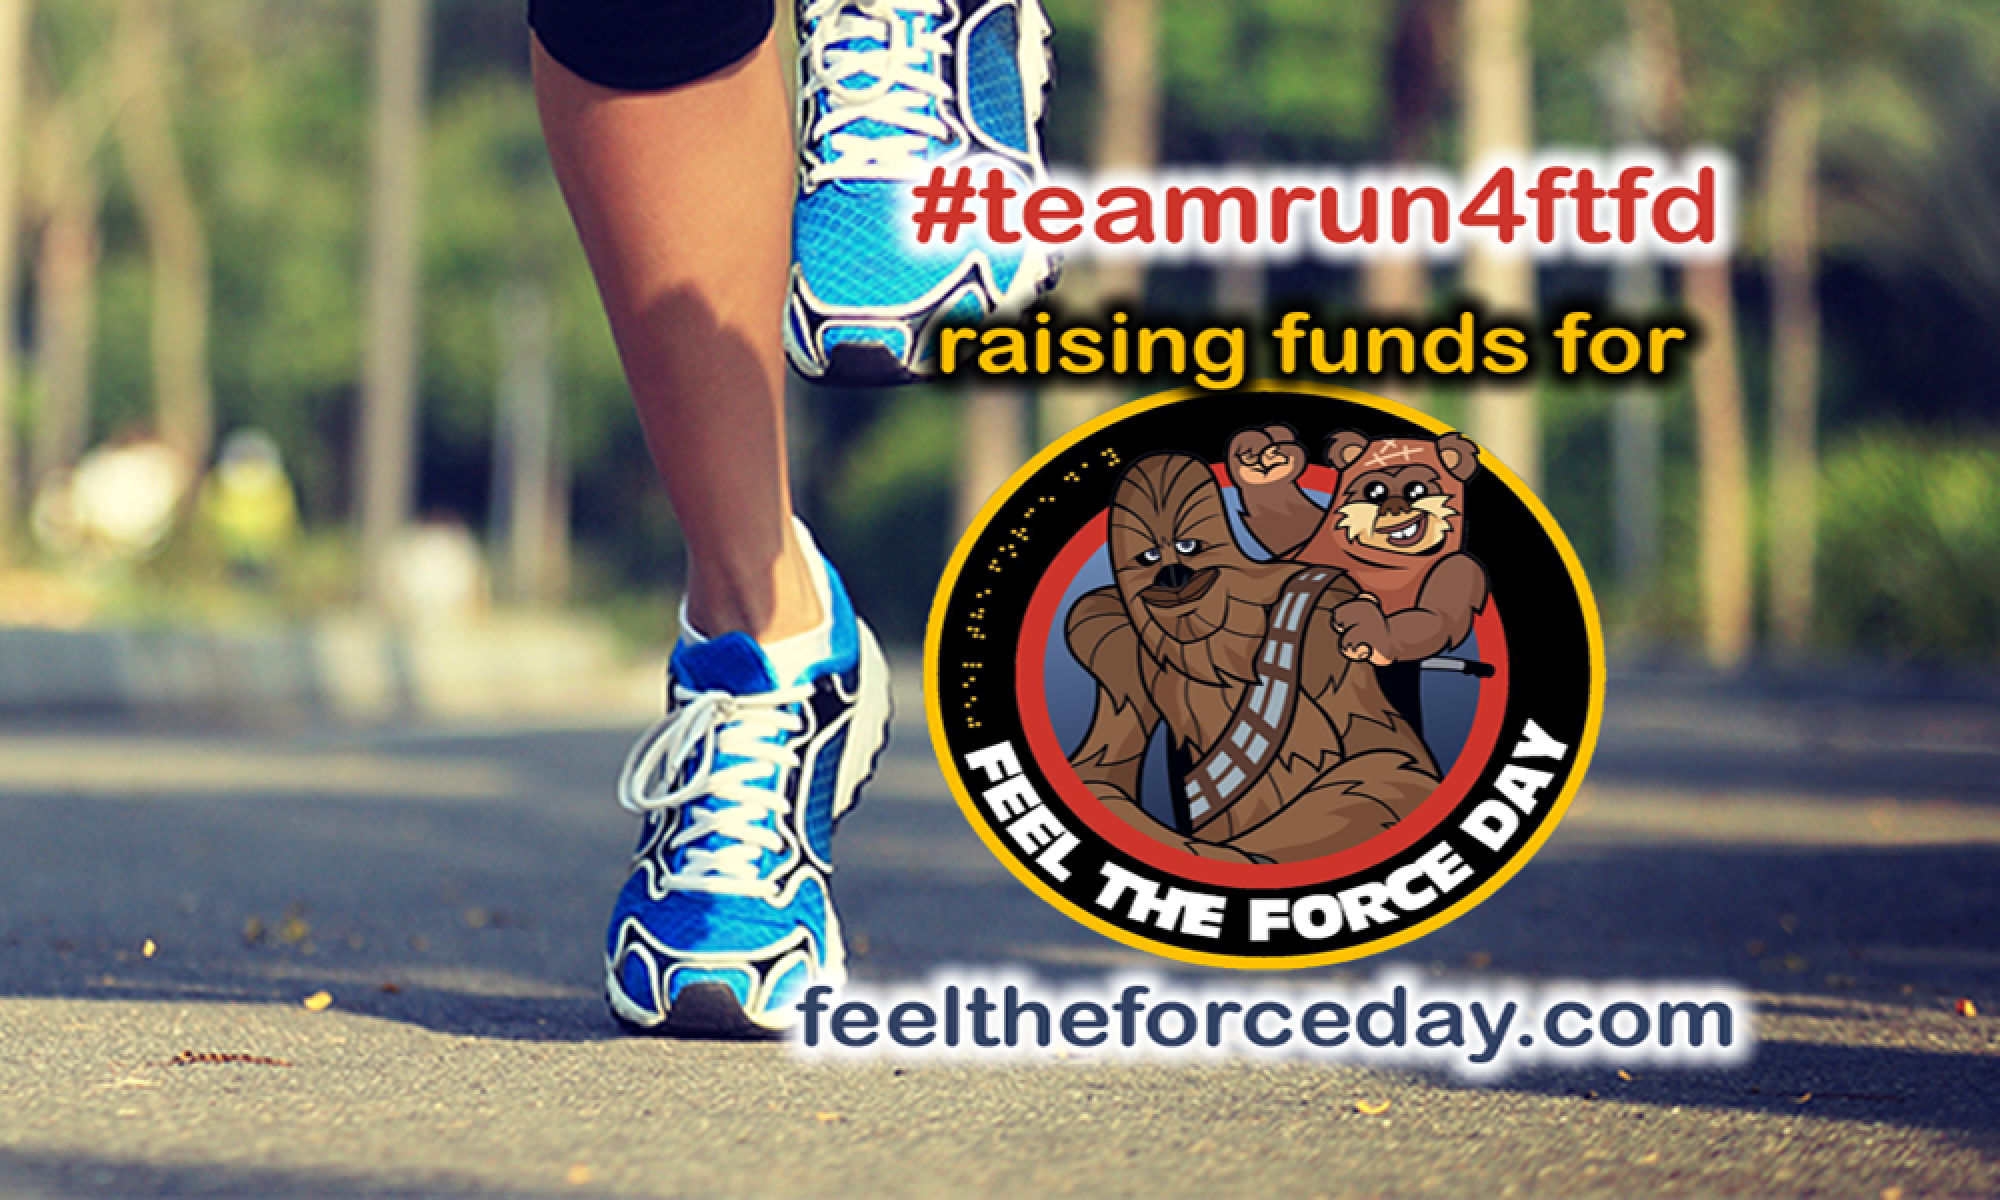 Run 4 Feel the Force Day